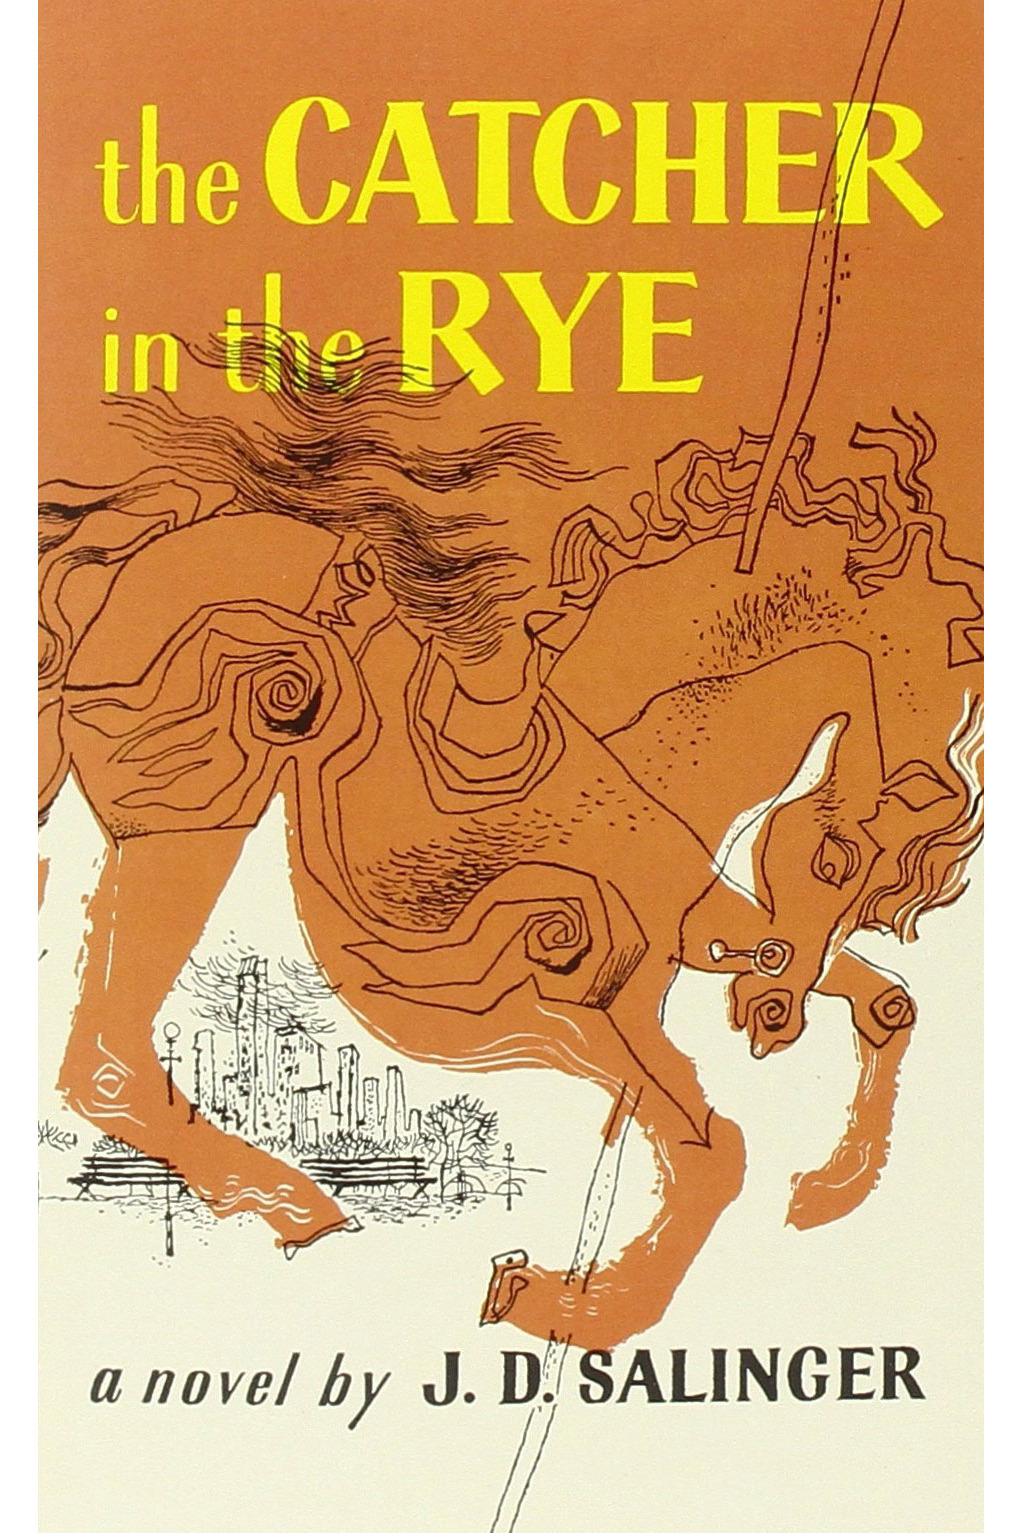 """The Catcher in the Rye,"" by J.D. Salinger"